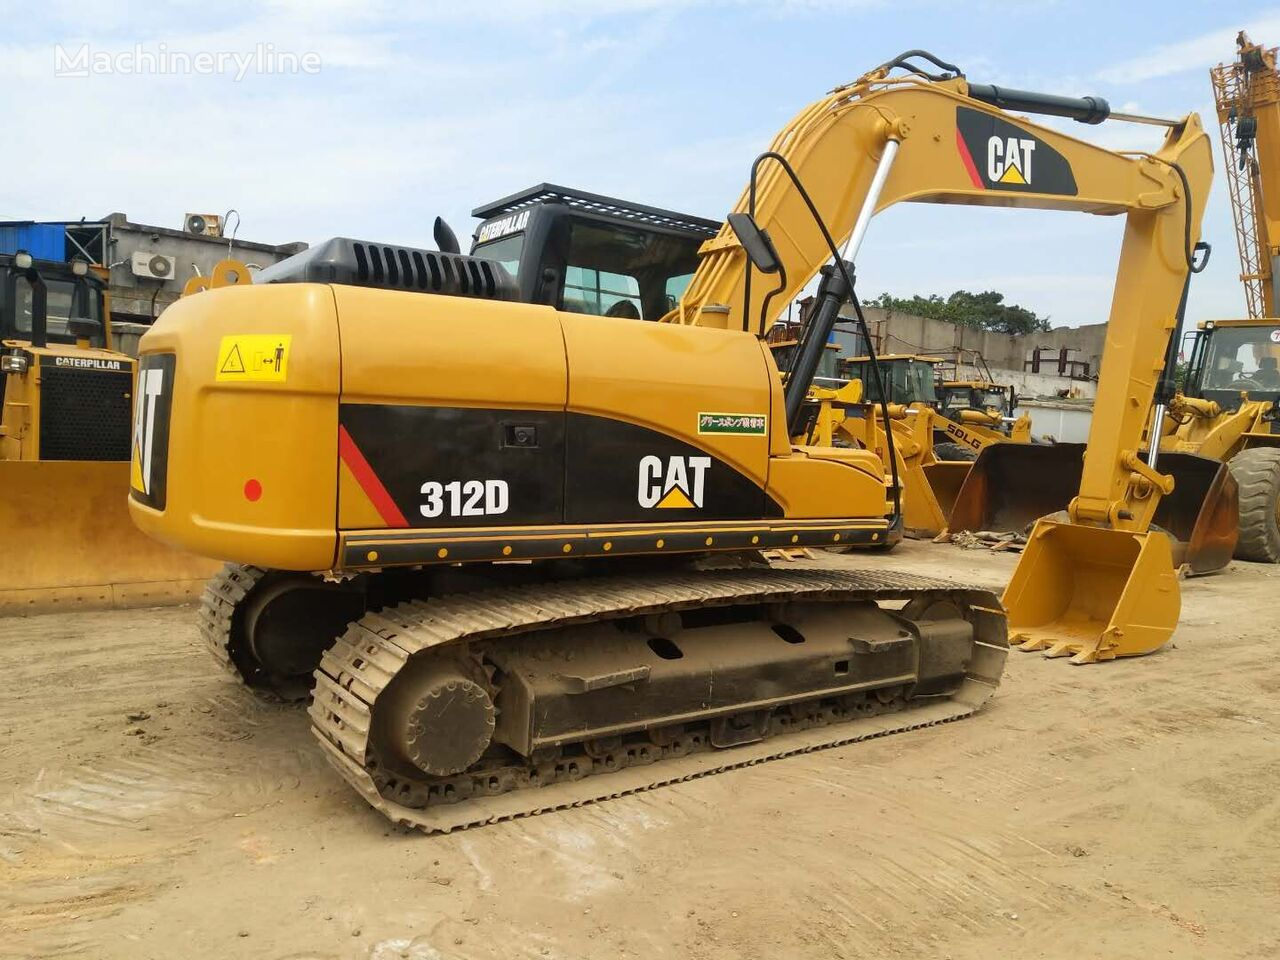 CATERPILLAR 312D  tracked excavator